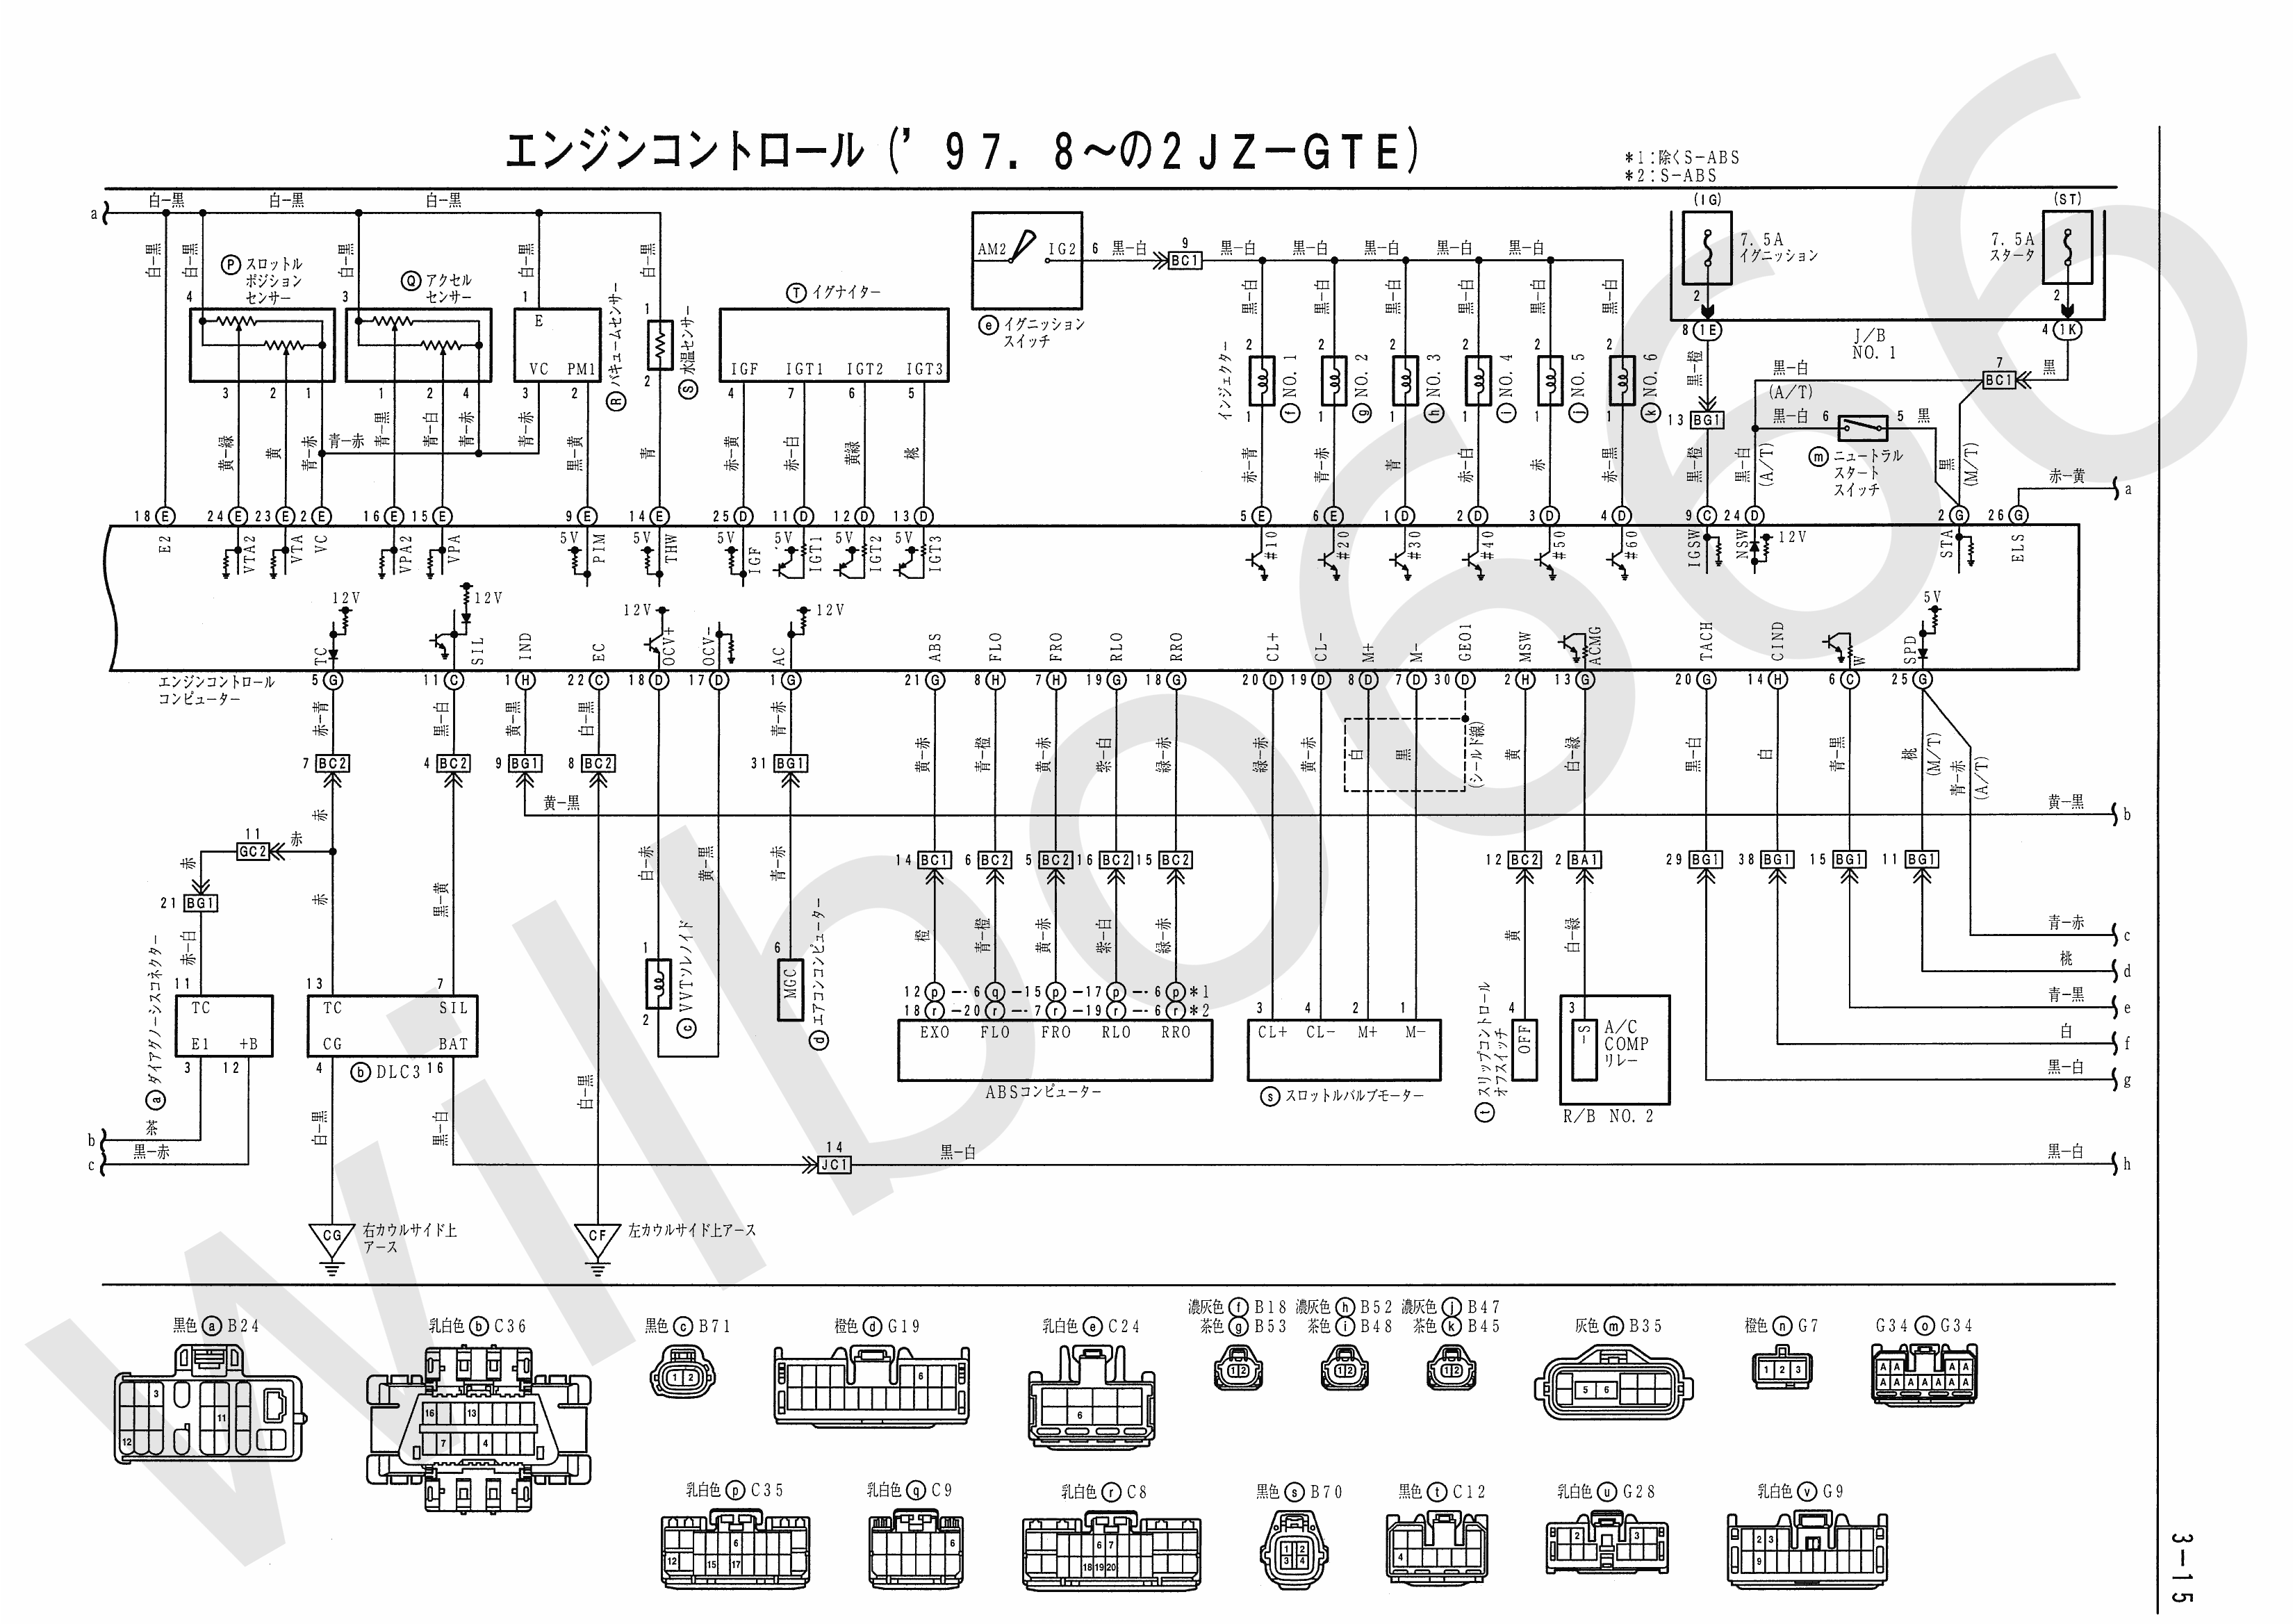 JZA80 Electrical Wiring Diagram 6742505 3 15 wilbo666 2jz gte vvti jza80 supra engine wiring 2jzgte wiring diagram at reclaimingppi.co